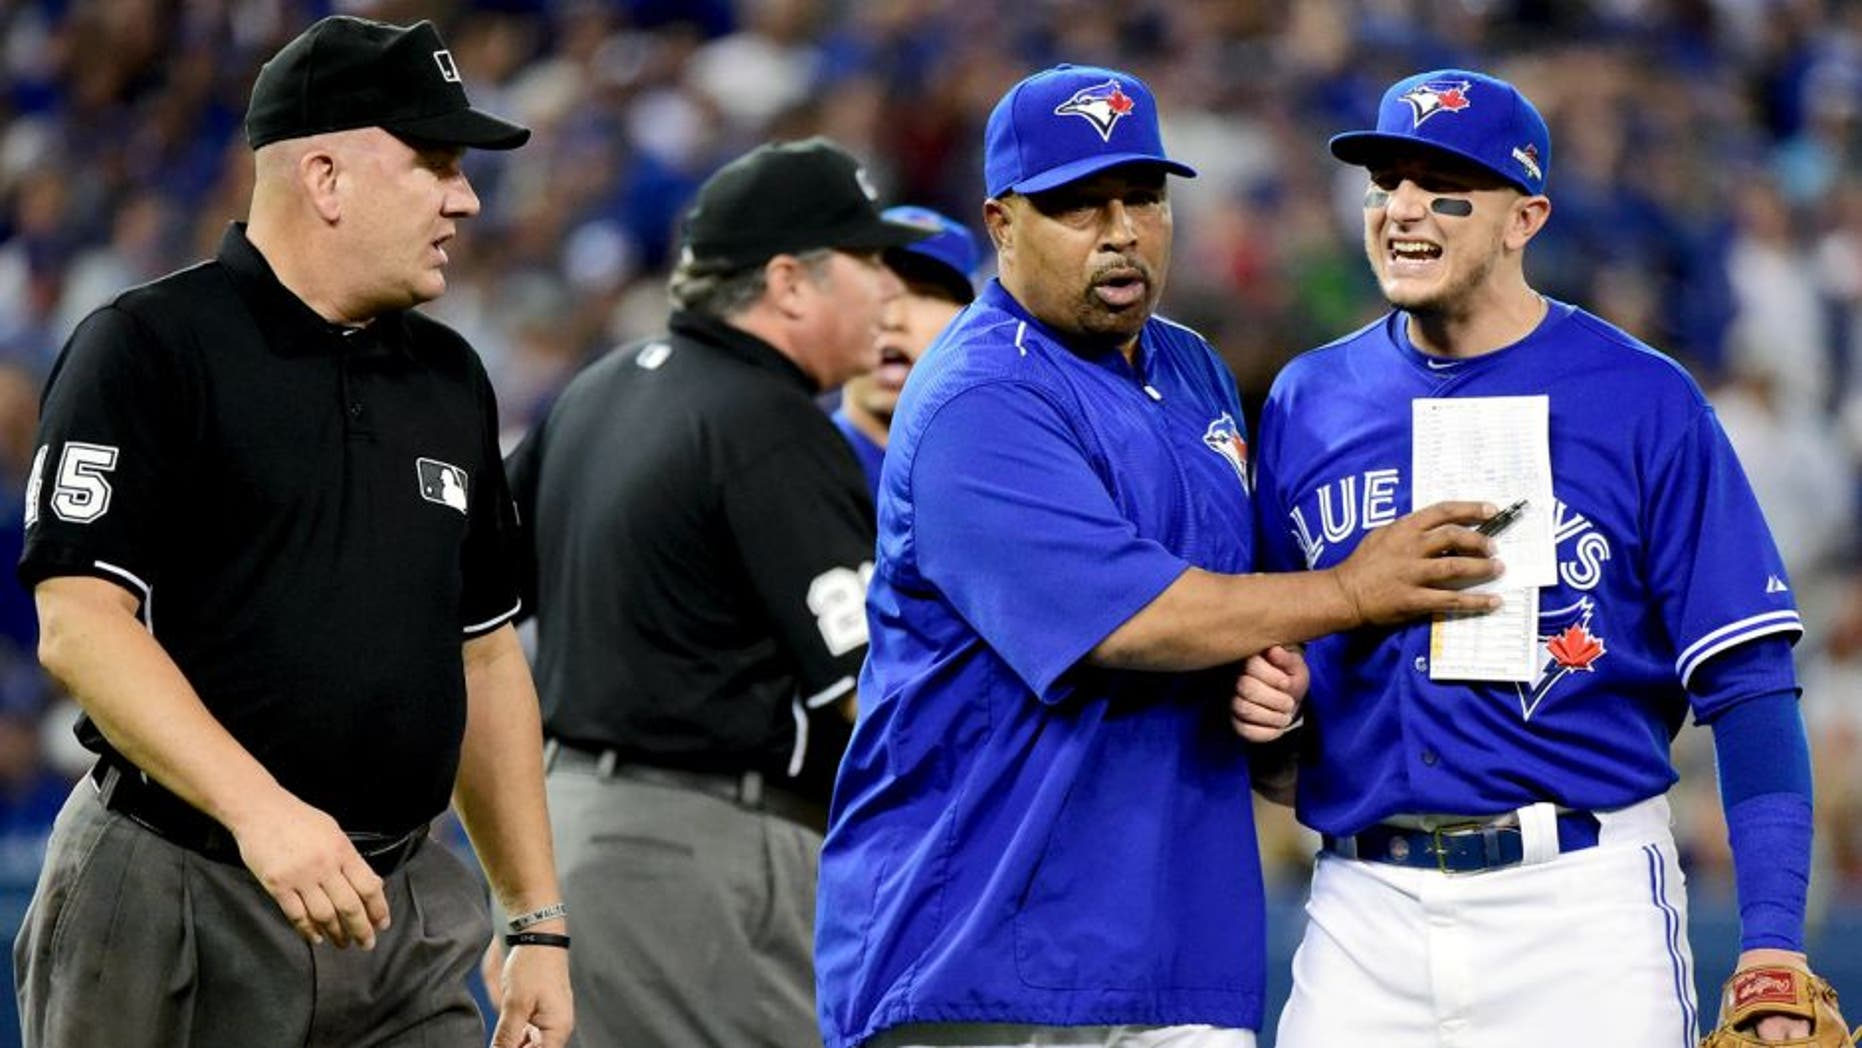 TORONTO, ON - OCTOBER 19: Troy Tulowitzki #2 of the Toronto Blue Jays reacts as he is ejected from the game in the eighth inning against the Kansas City Royals during game three of the American League Championship Series at Rogers Centre on October 19, 2015 in Toronto, Canada. (Photo by Harry How/Getty Images)